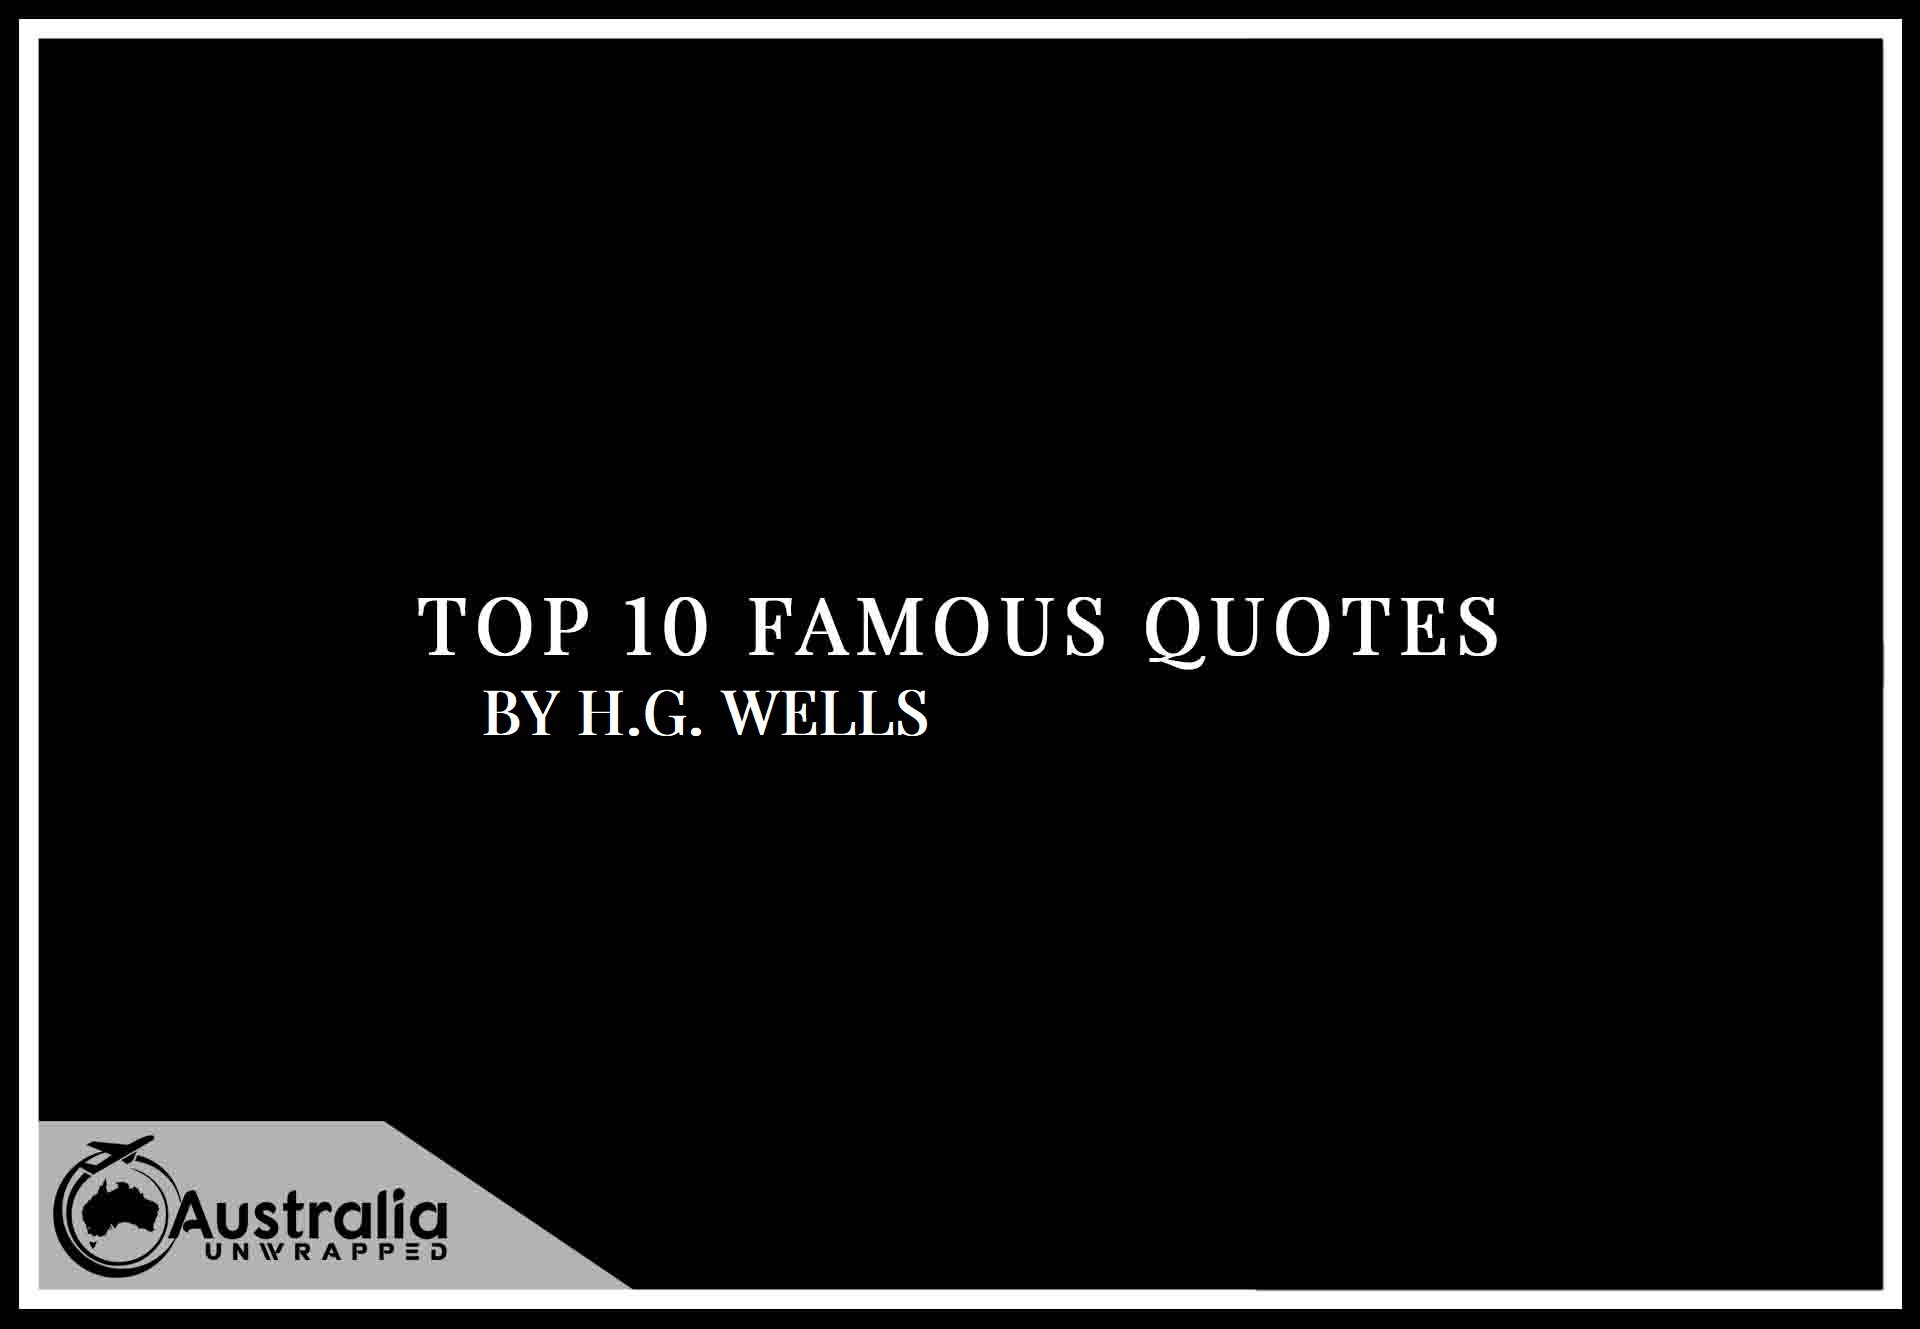 Top 10 Famous Quotes by Author H.G. Wells